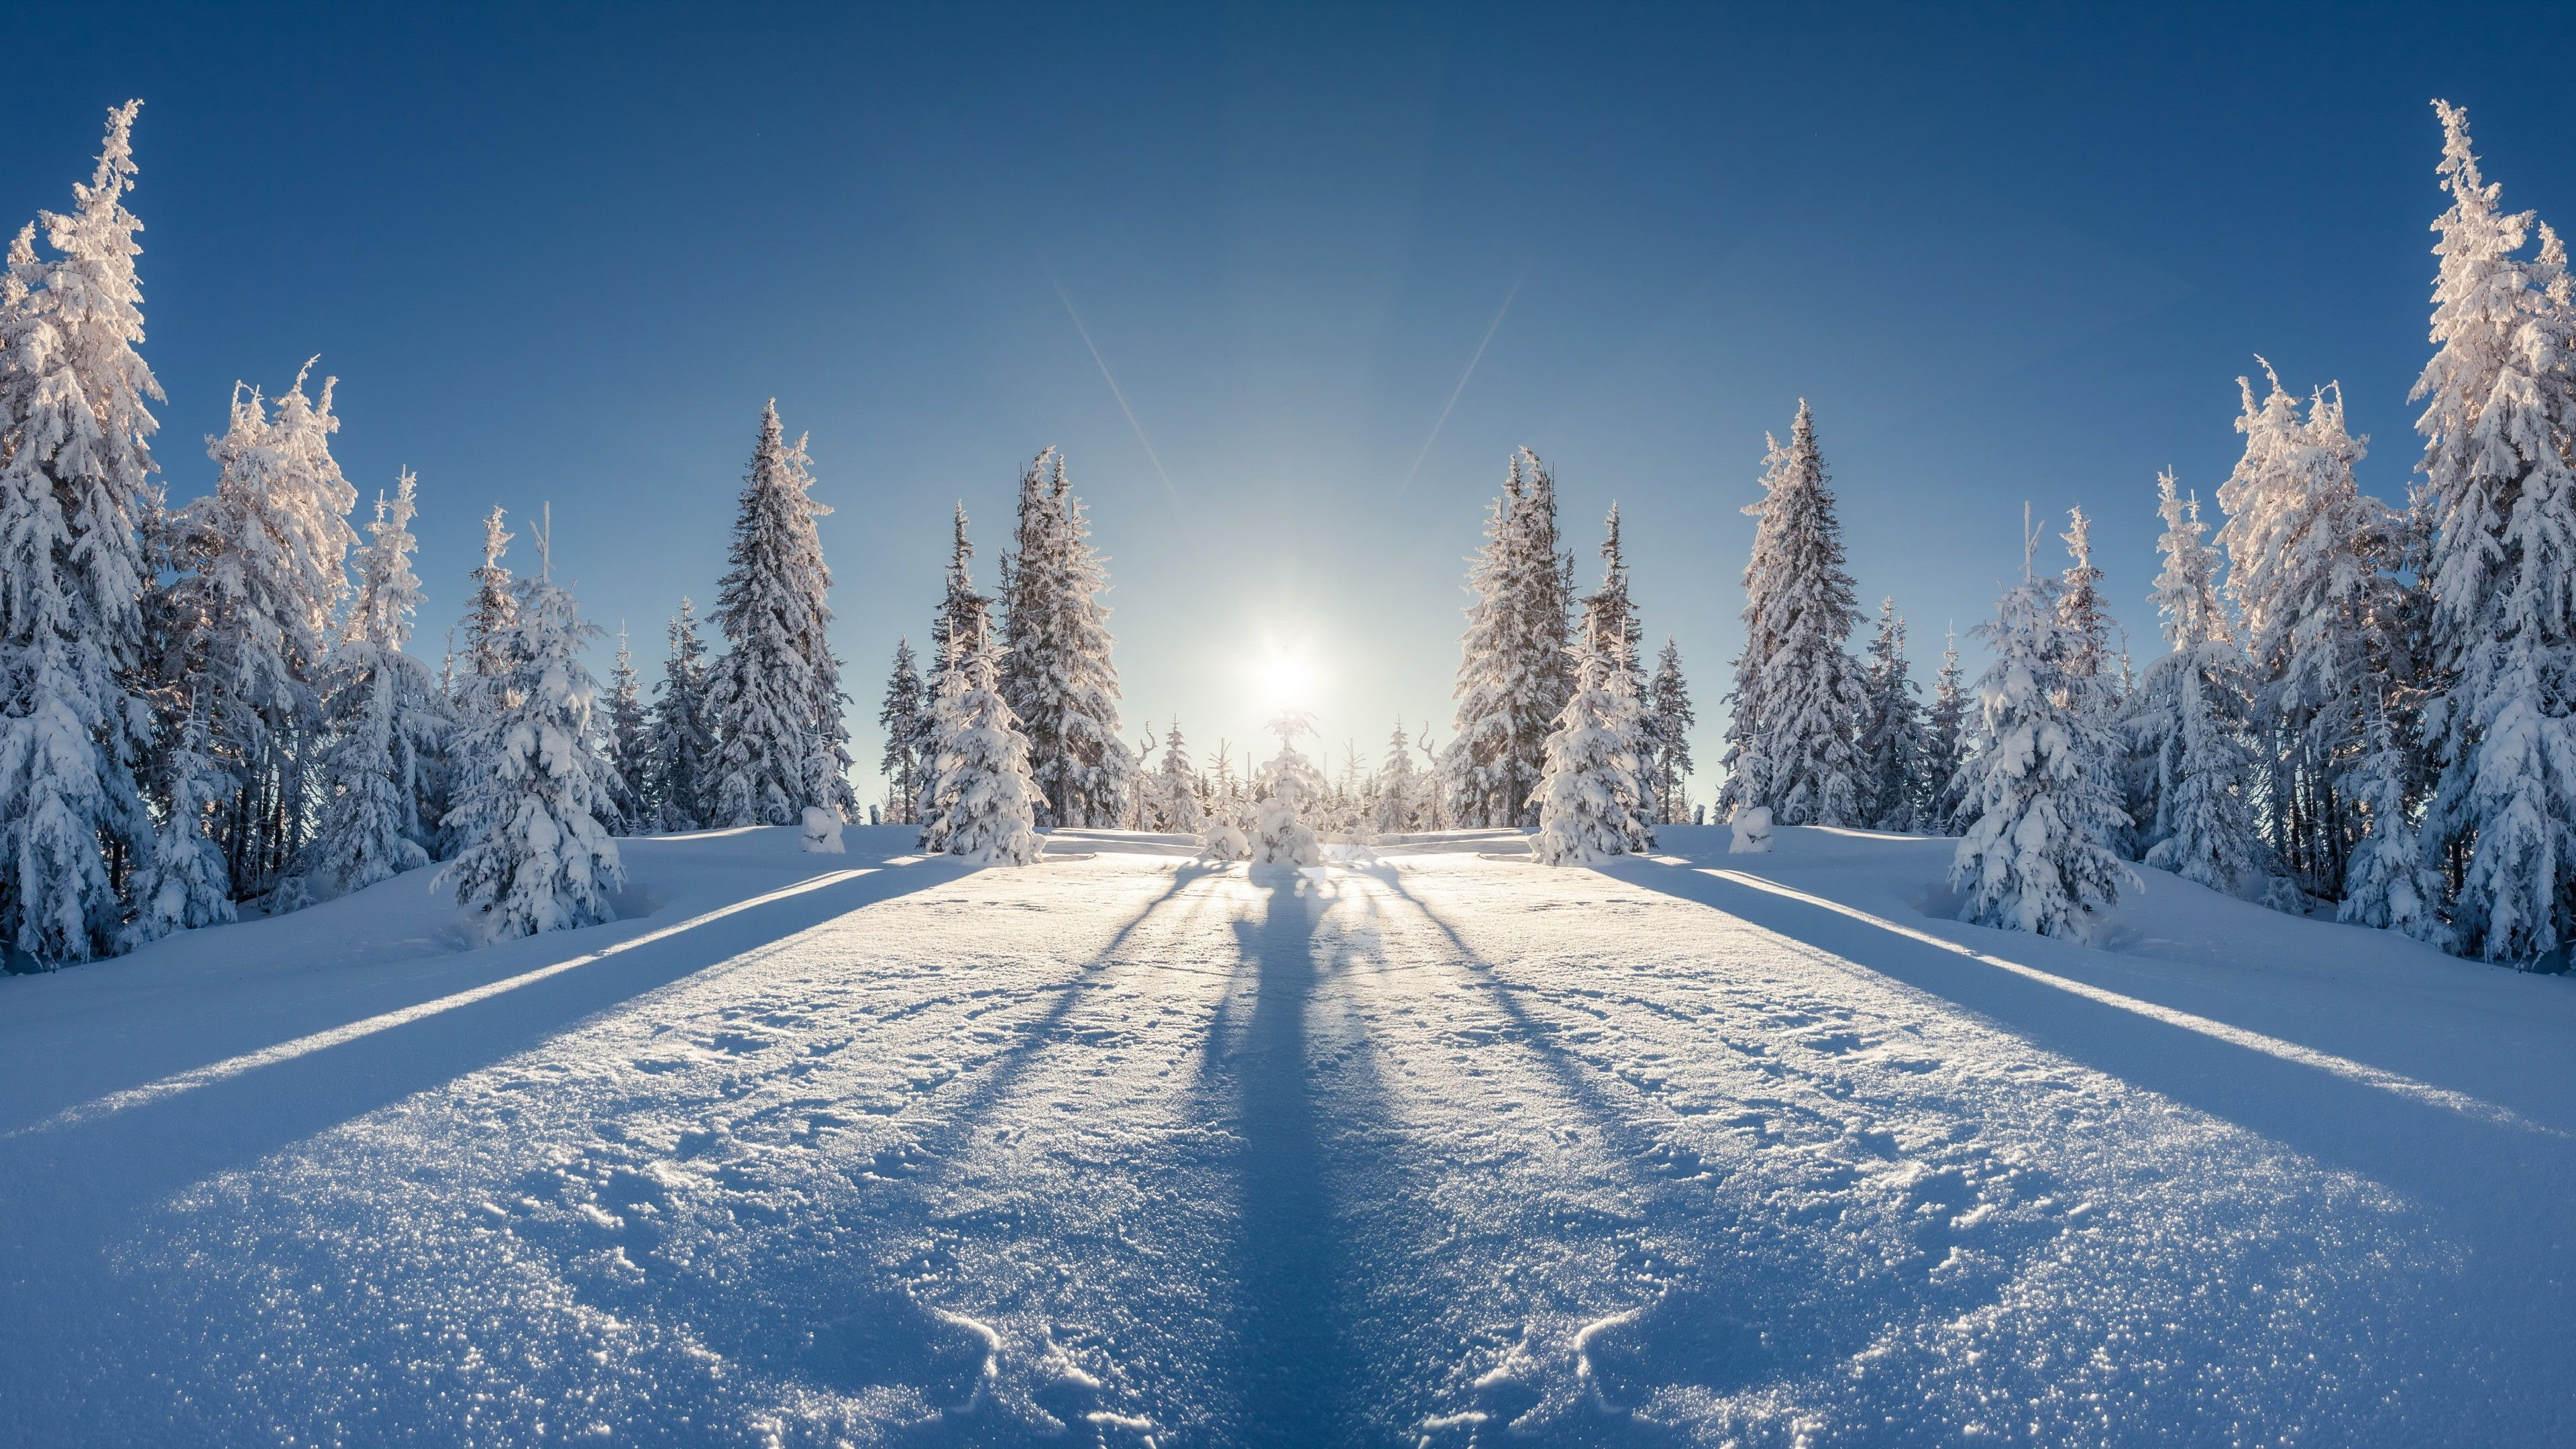 Winter 4k Nice Picture 4k Wallpaper Hdwallpaper Desktop In 2020 Winter Landscape Cool Pictures Landscape